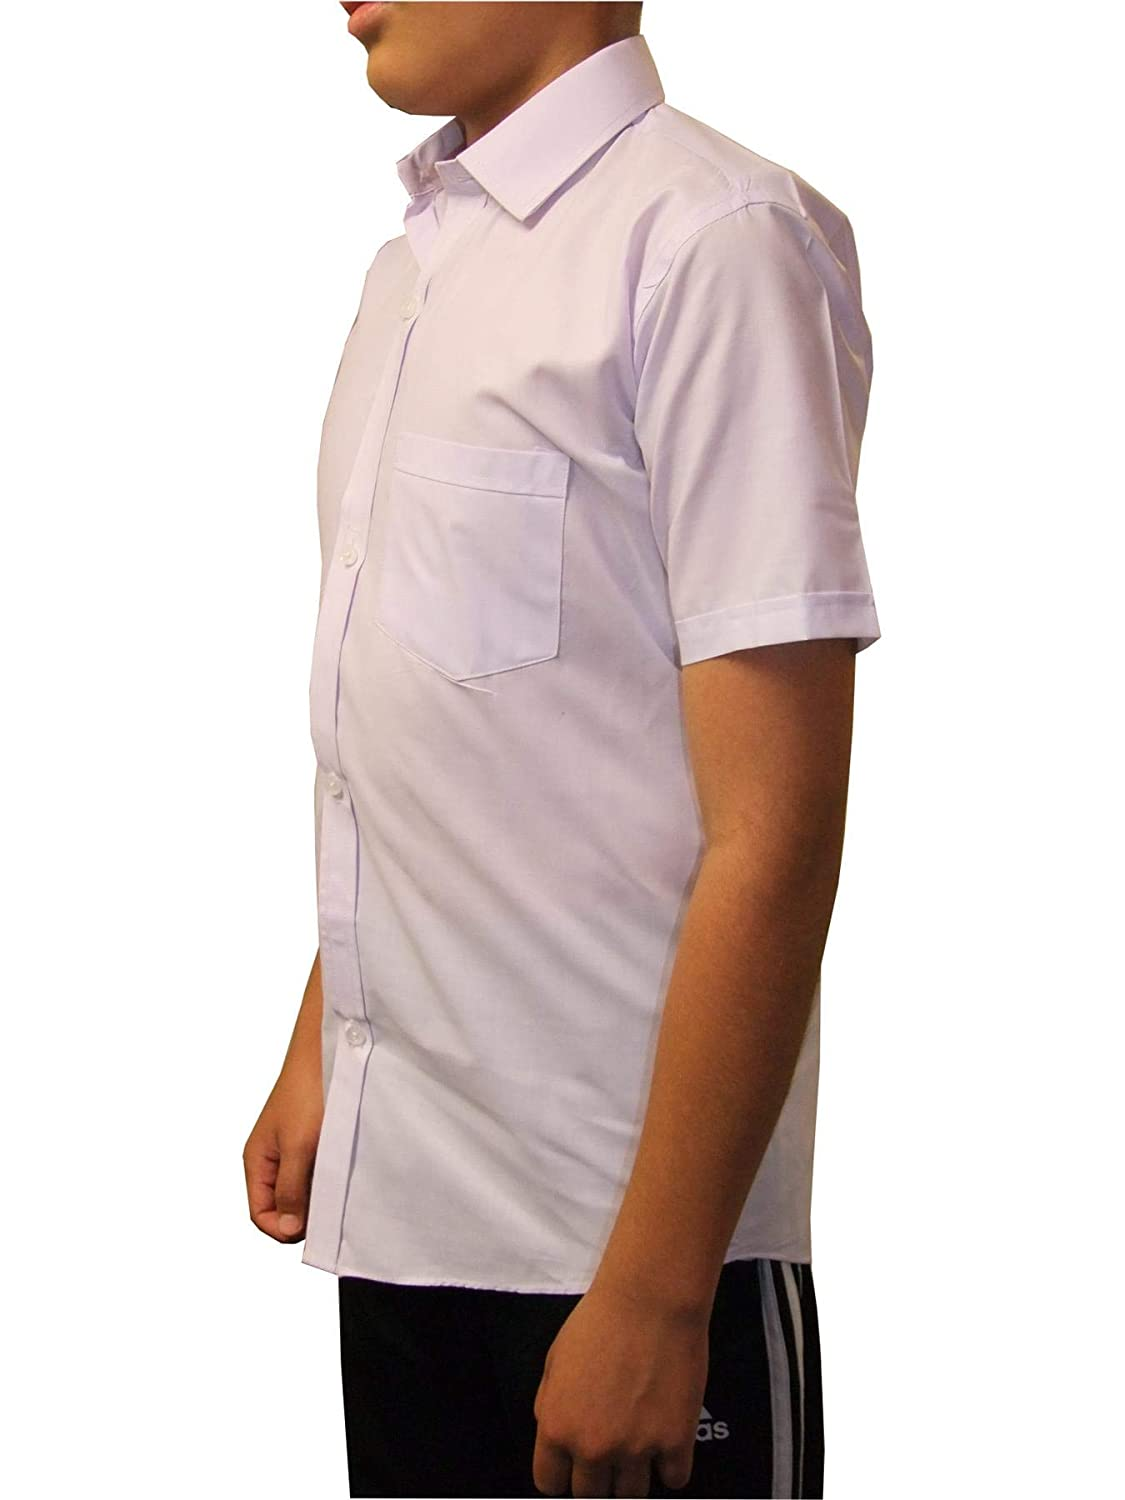 Apparel Boys Kids Short Sleeve School Shirt Button up Uniform White 2 Pack 5 to 13 Years